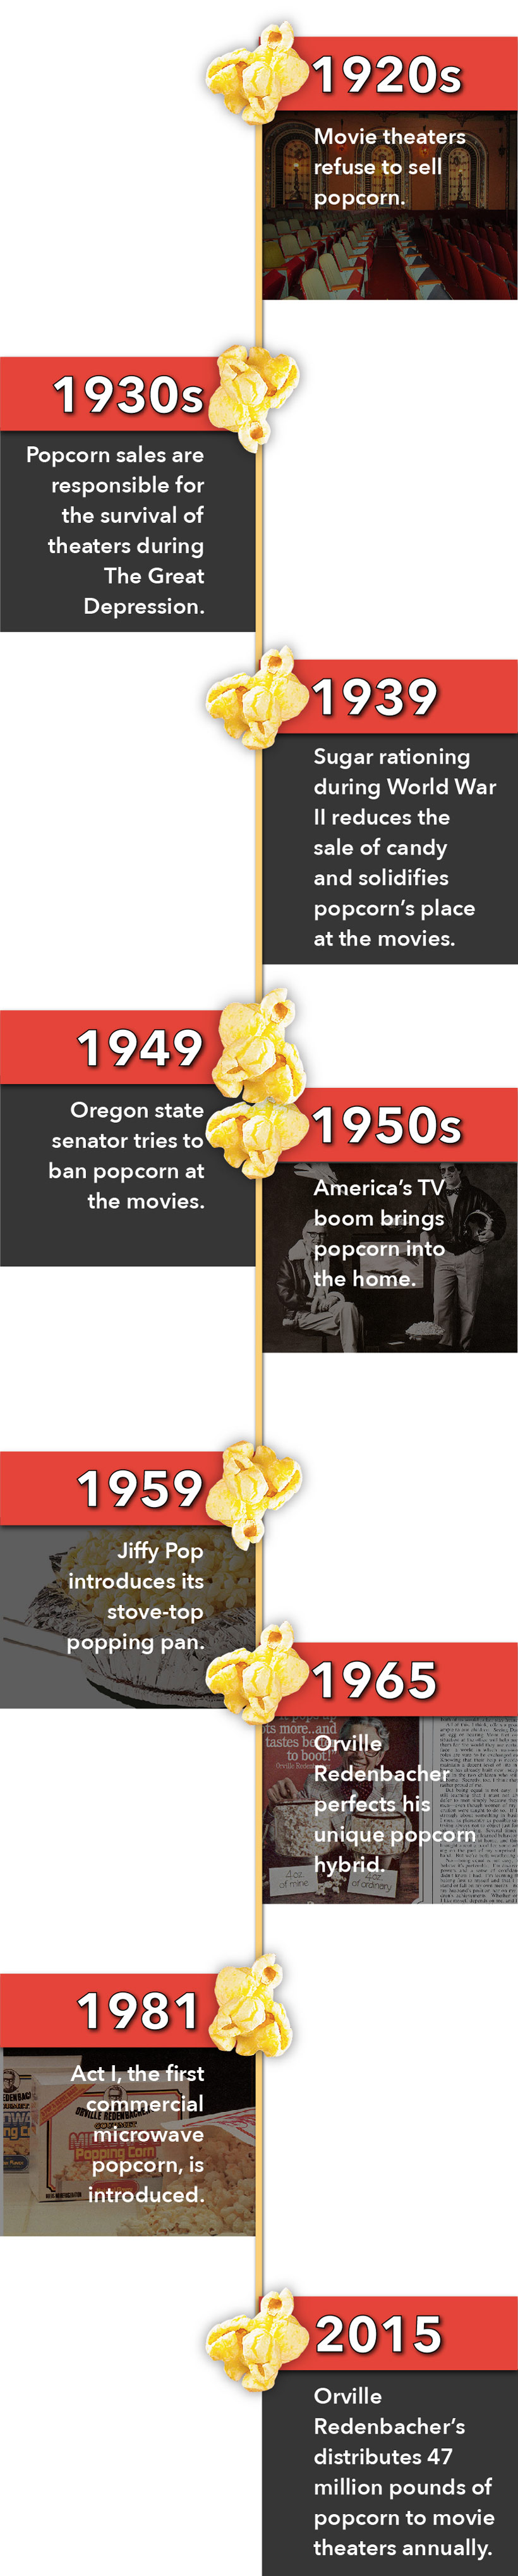 Timeline---history-of-popcorn-at-movie-theatre-04.jpg